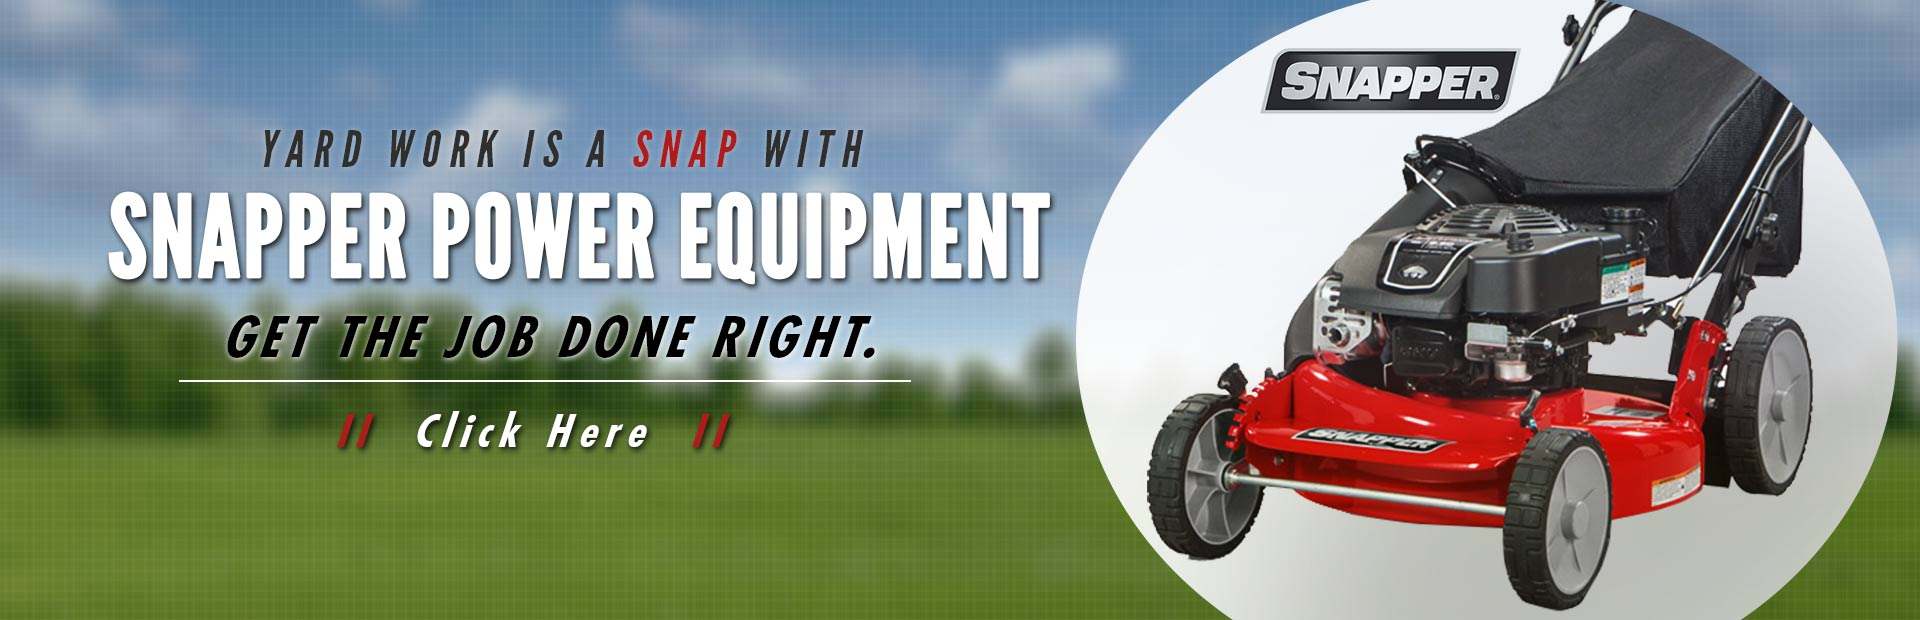 Click here to view Snapper power equipment.